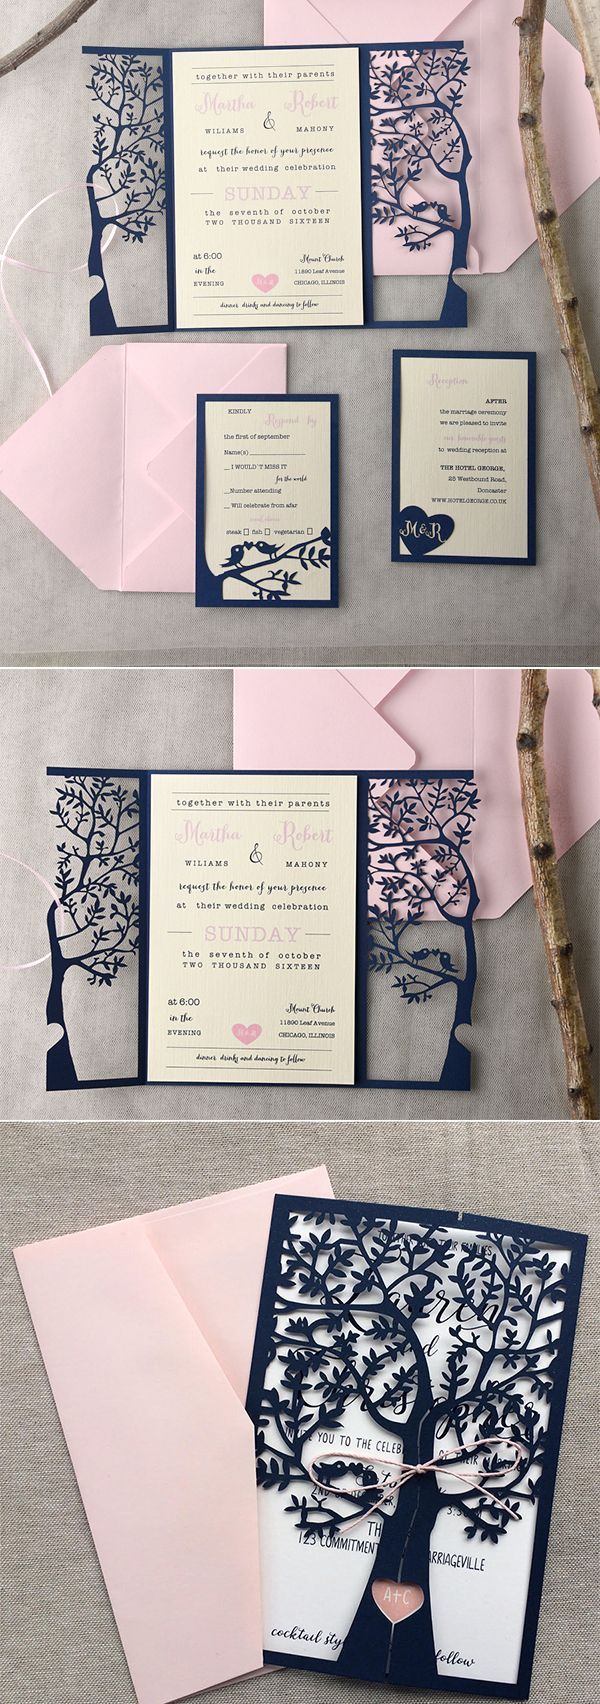 Invitations Wedding Cheap Navy Blue Laser Cut Wedding Invitations Blush Pink Wedding